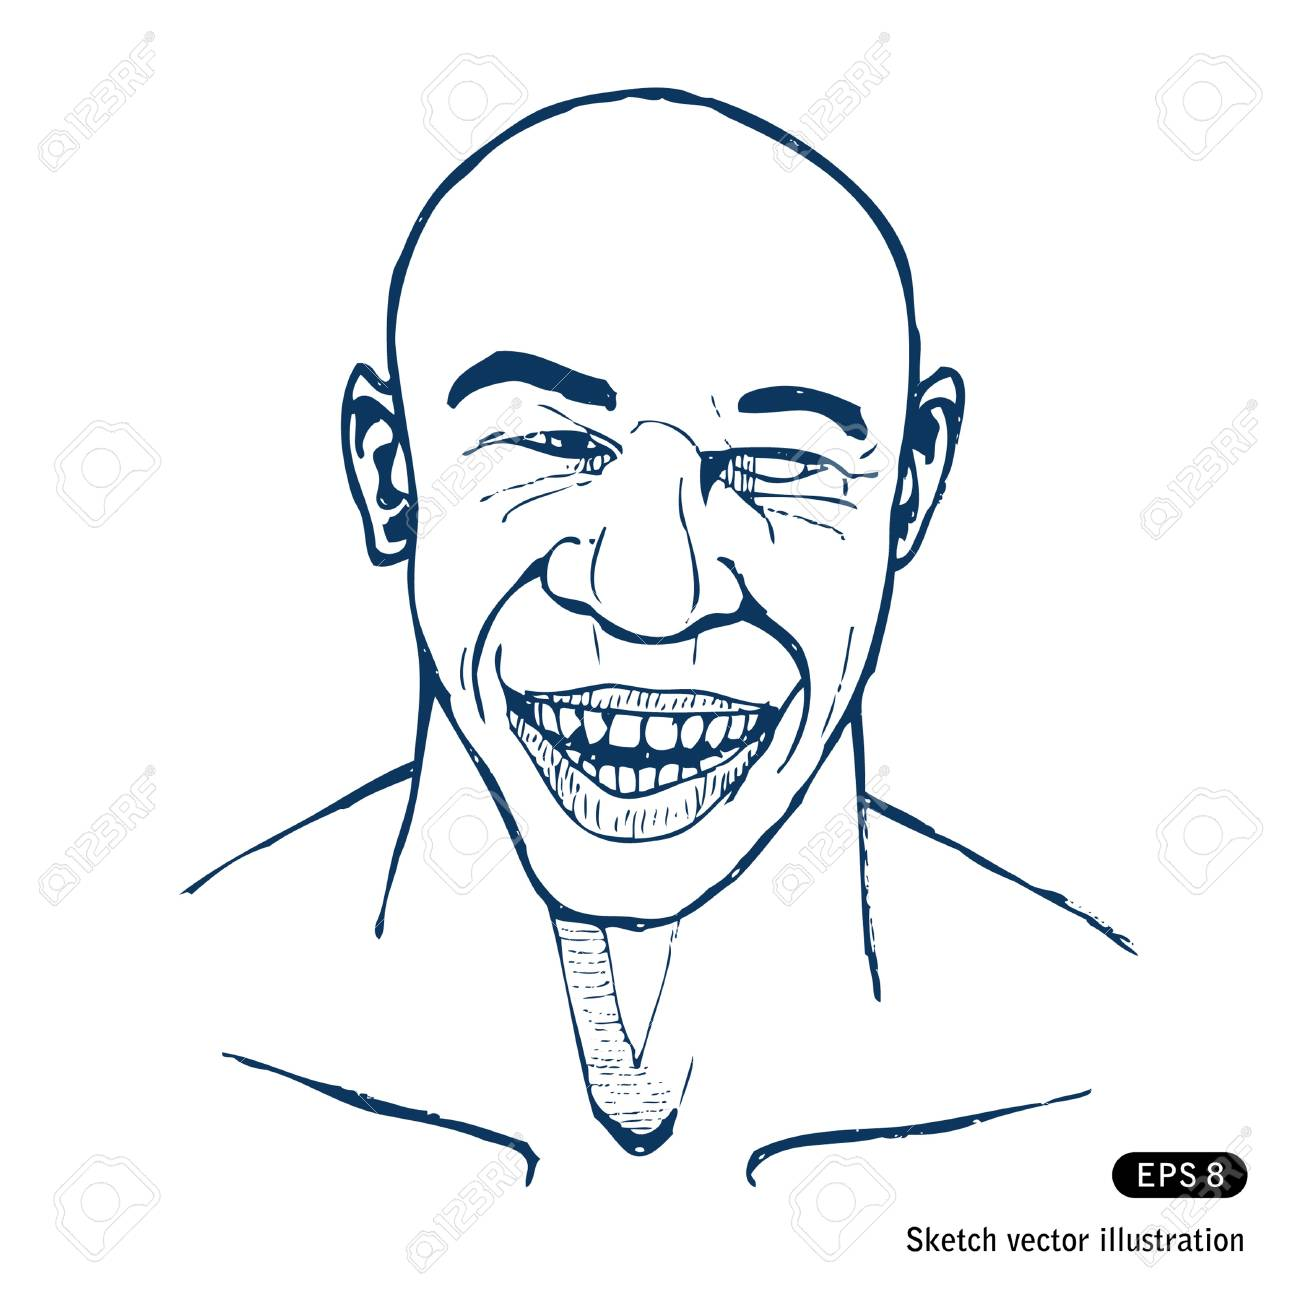 Smiling man. Stock Vector - 14957035